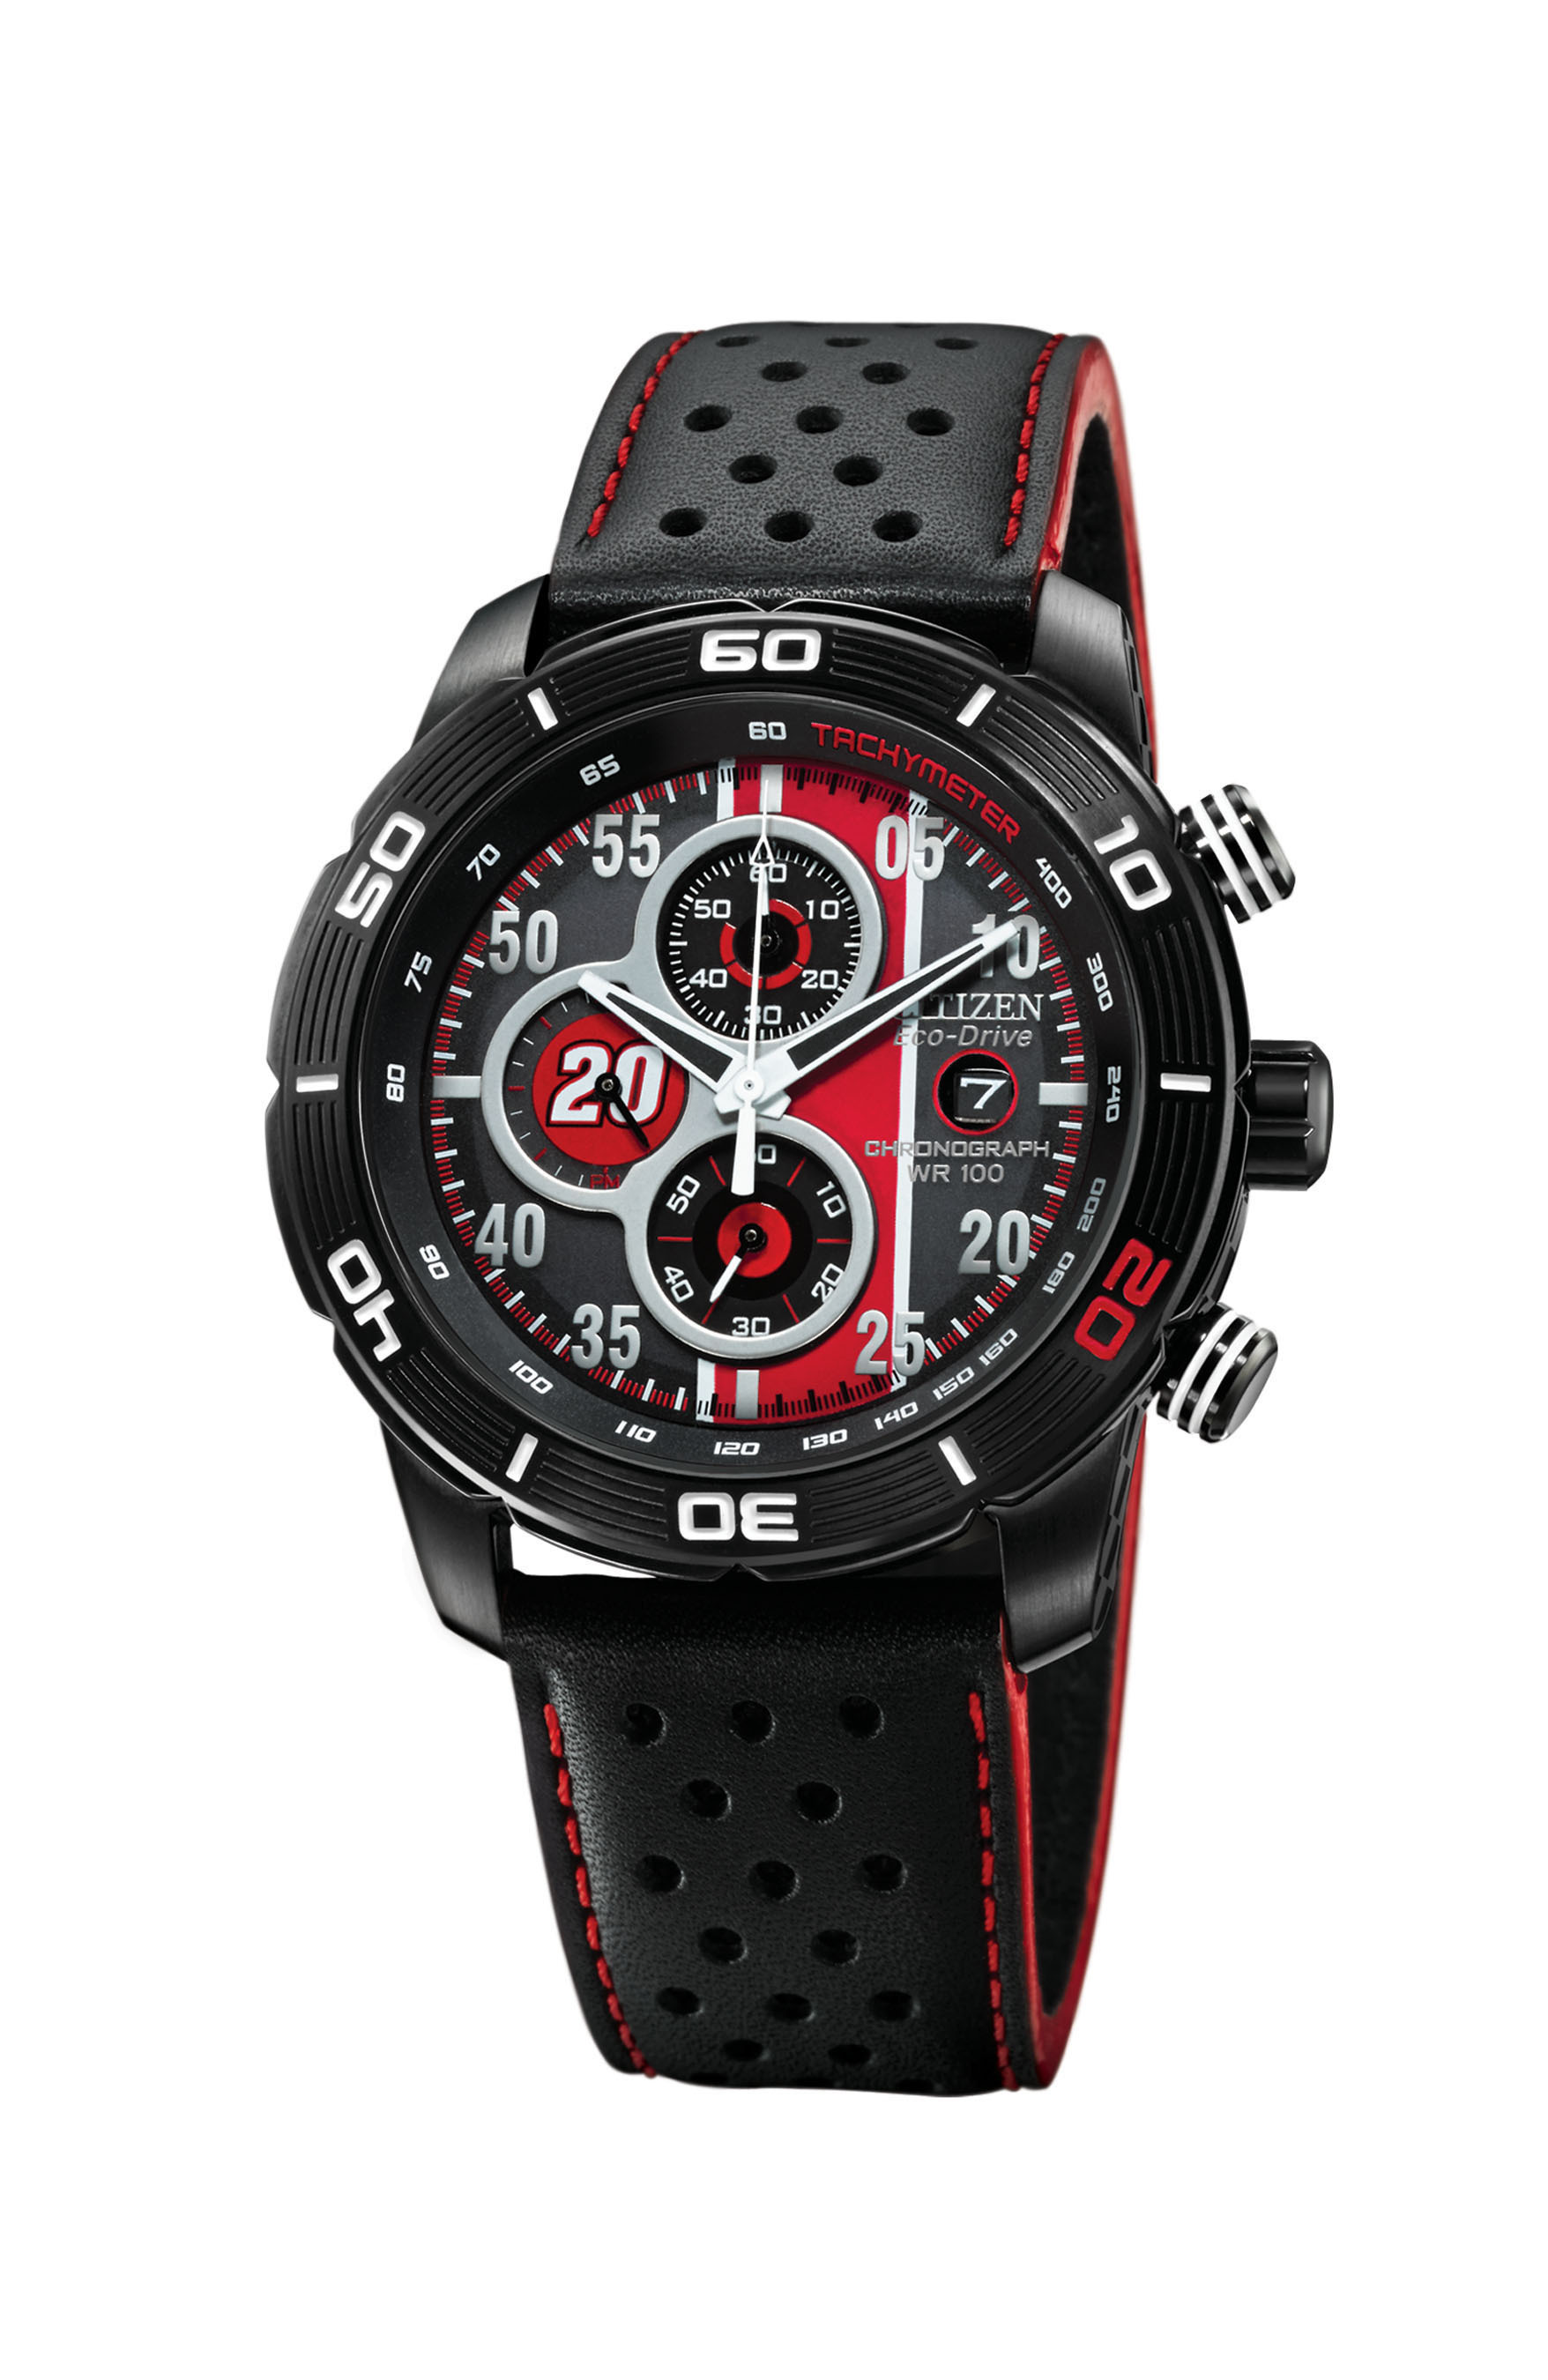 primo casio s watches eco watch ecodrive drive citizen mens auto racing chronograph men review